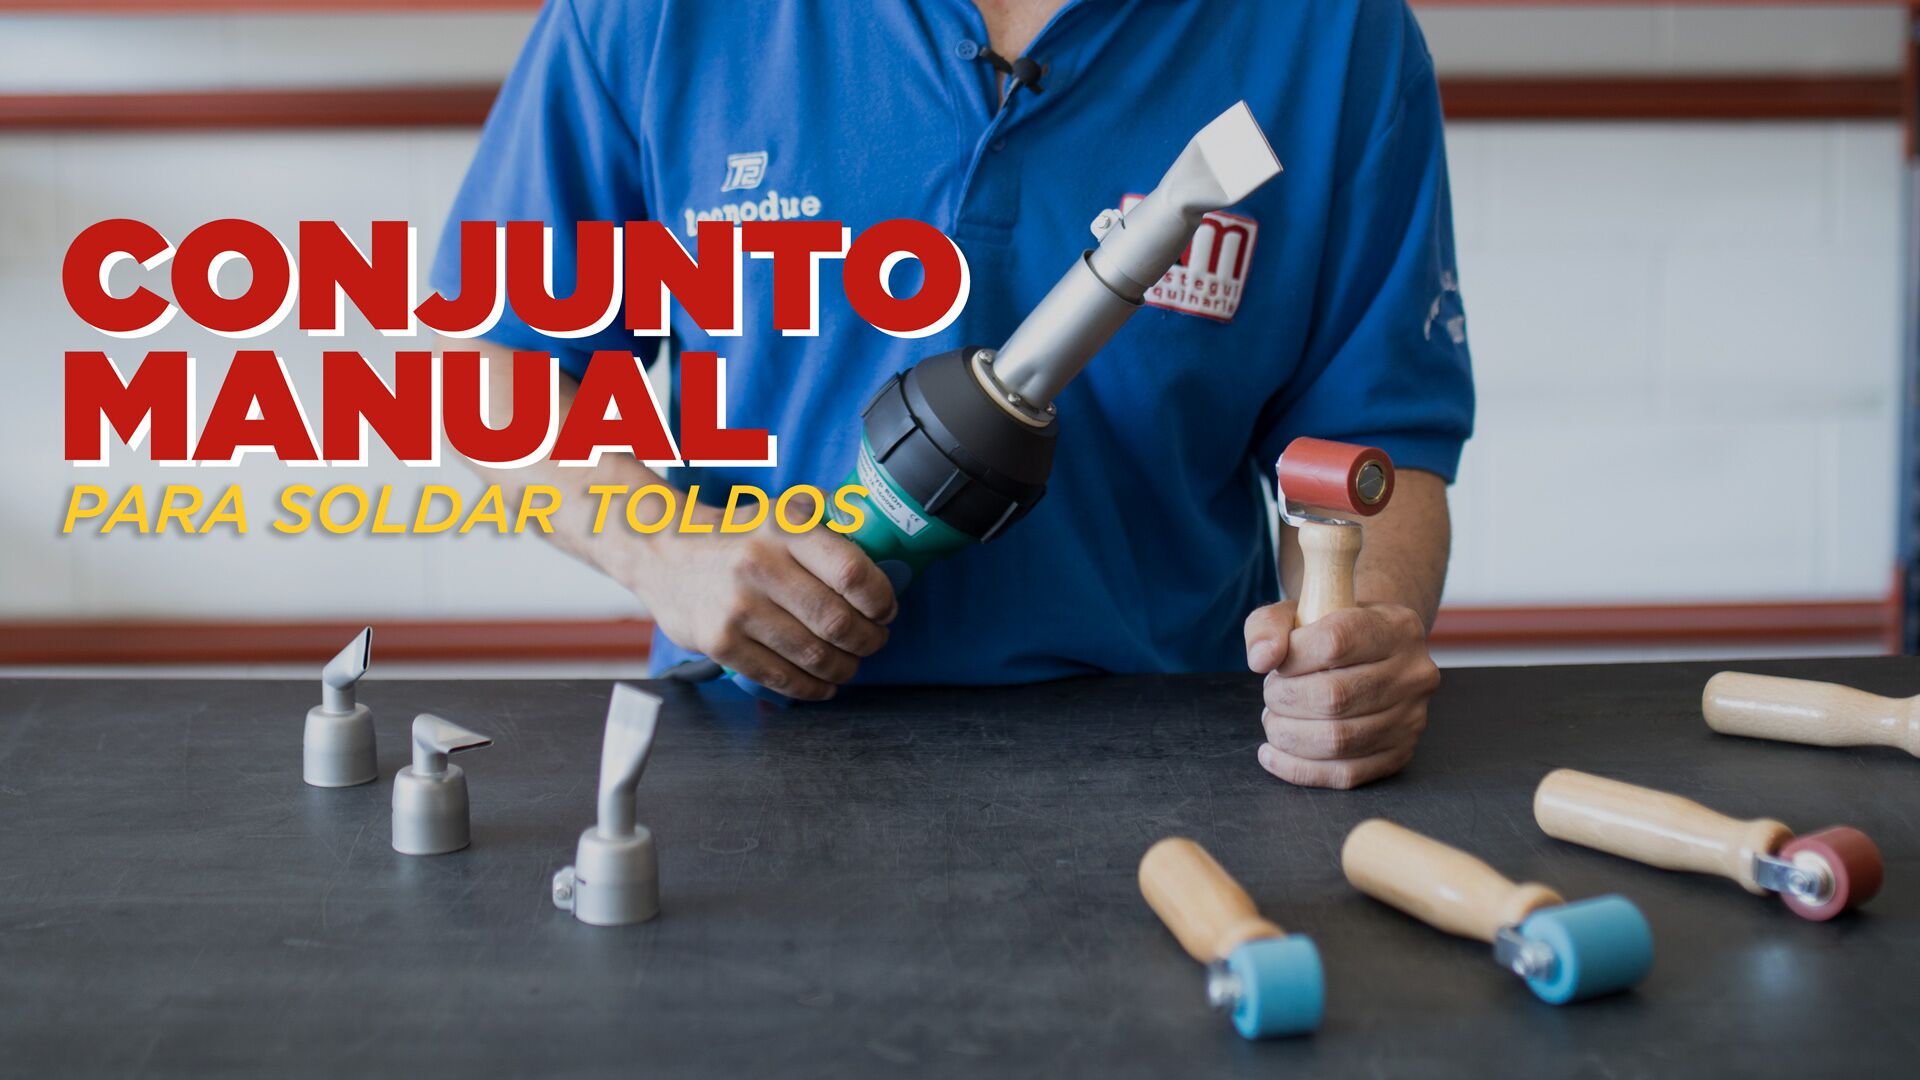 KIT MANUAL IMPERMEABILIZACIÓN 1